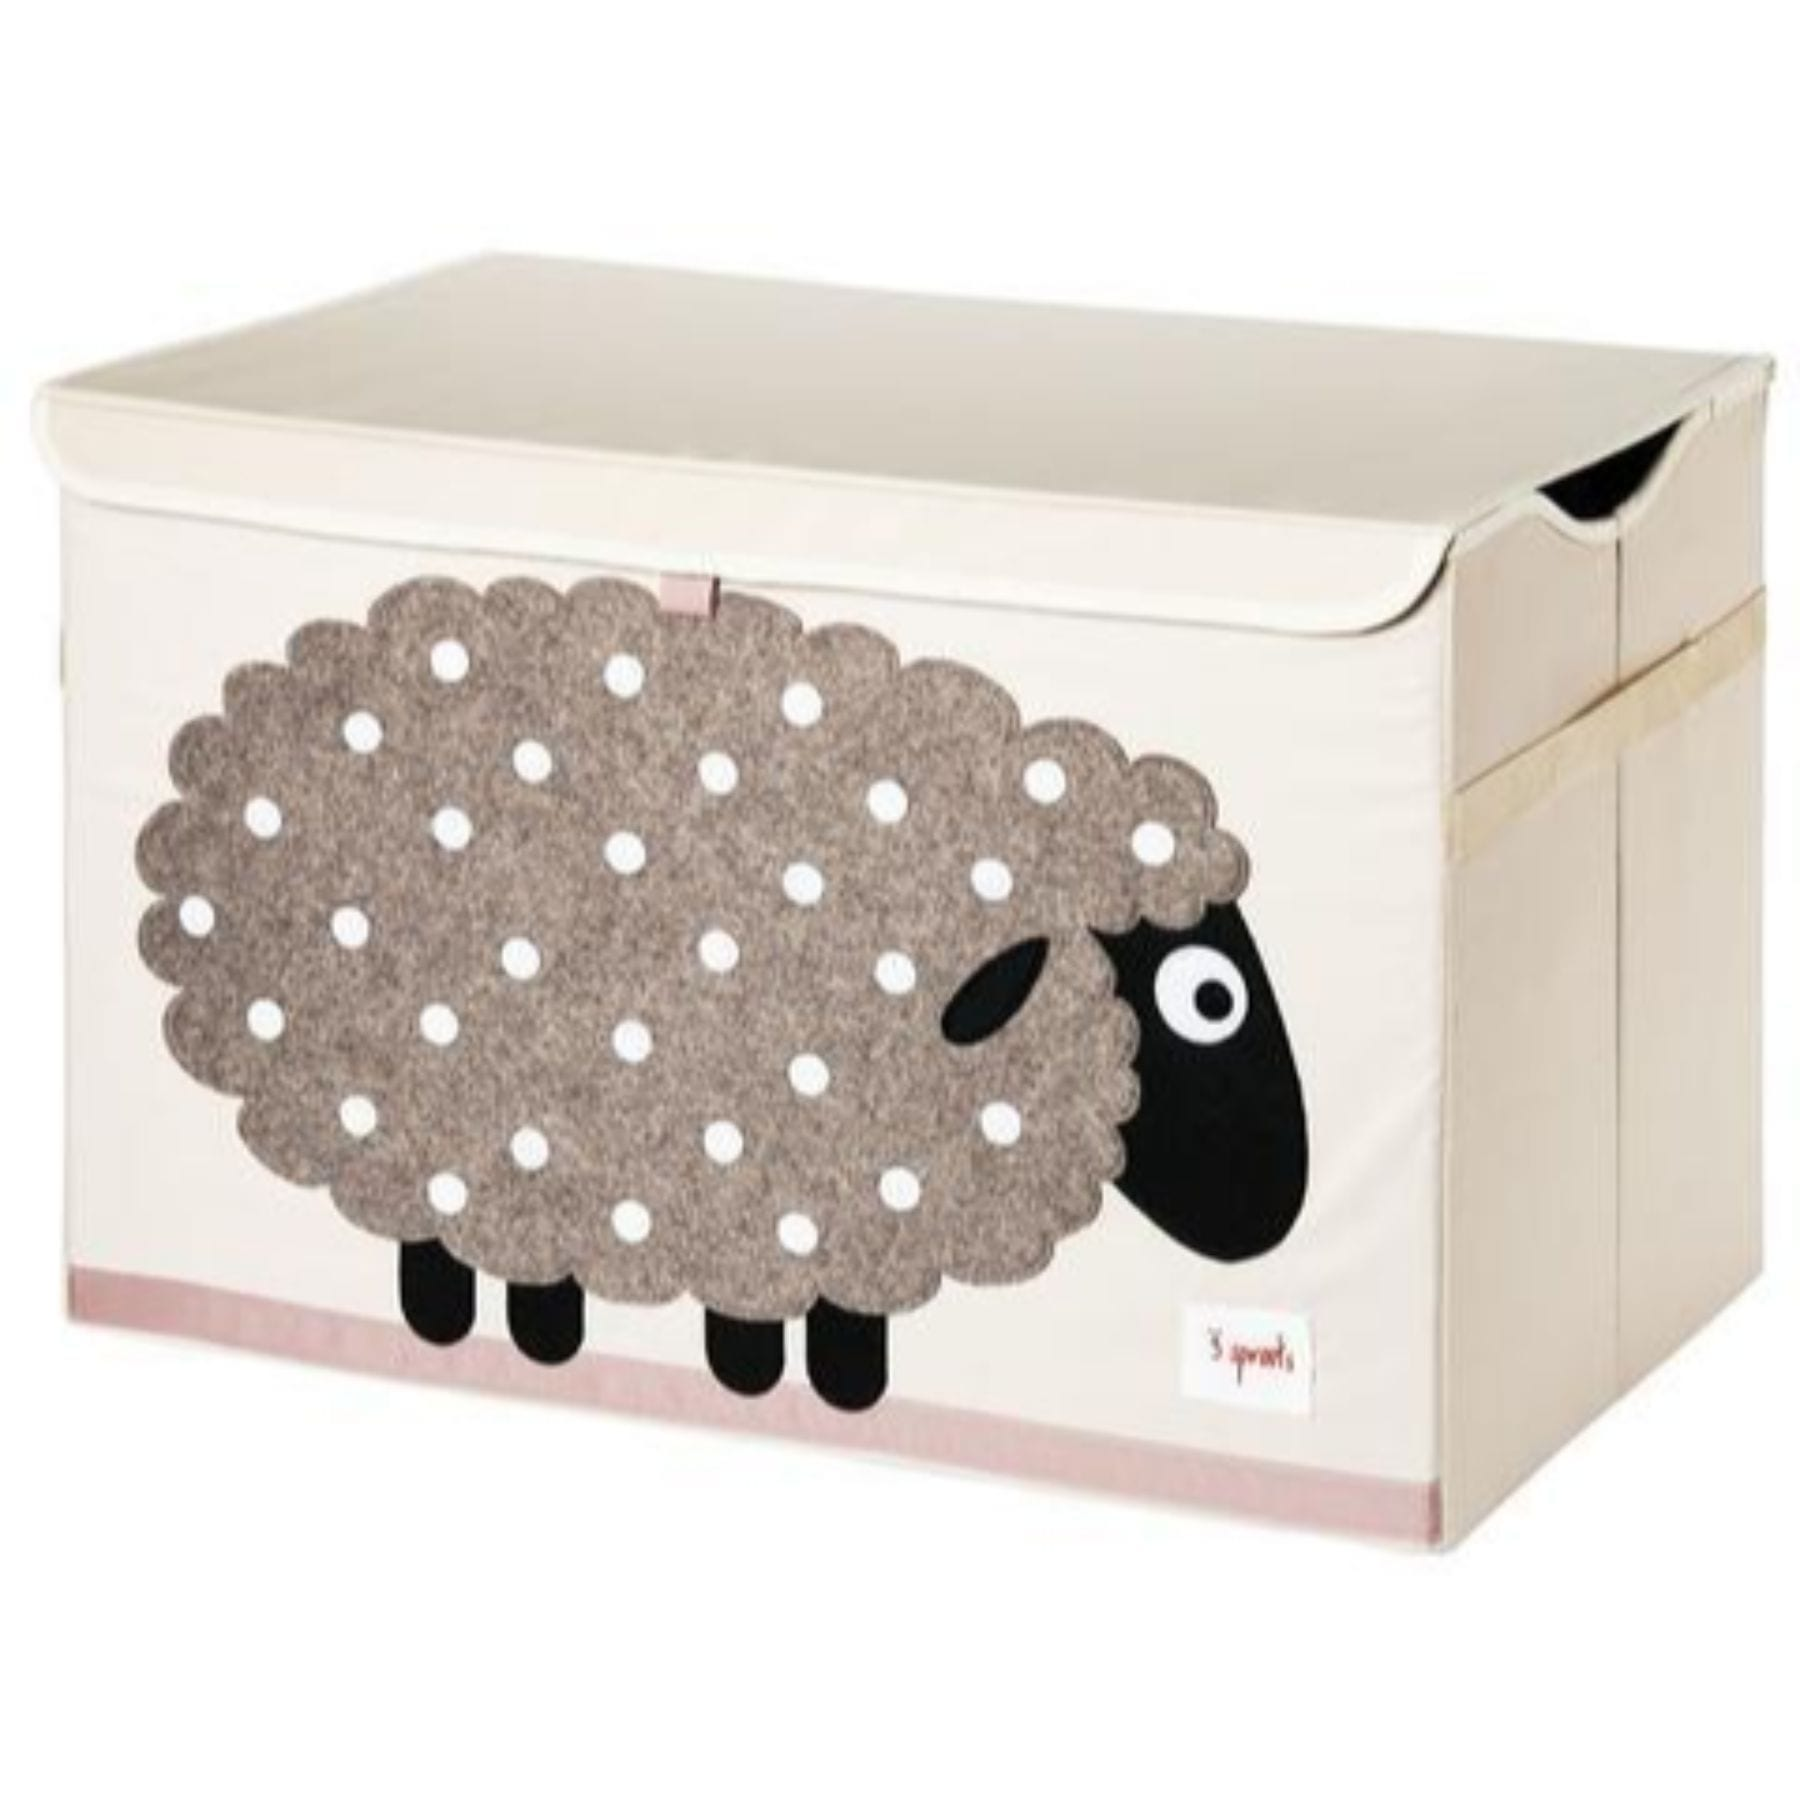 3 Sprouts Sheep Storage Chest